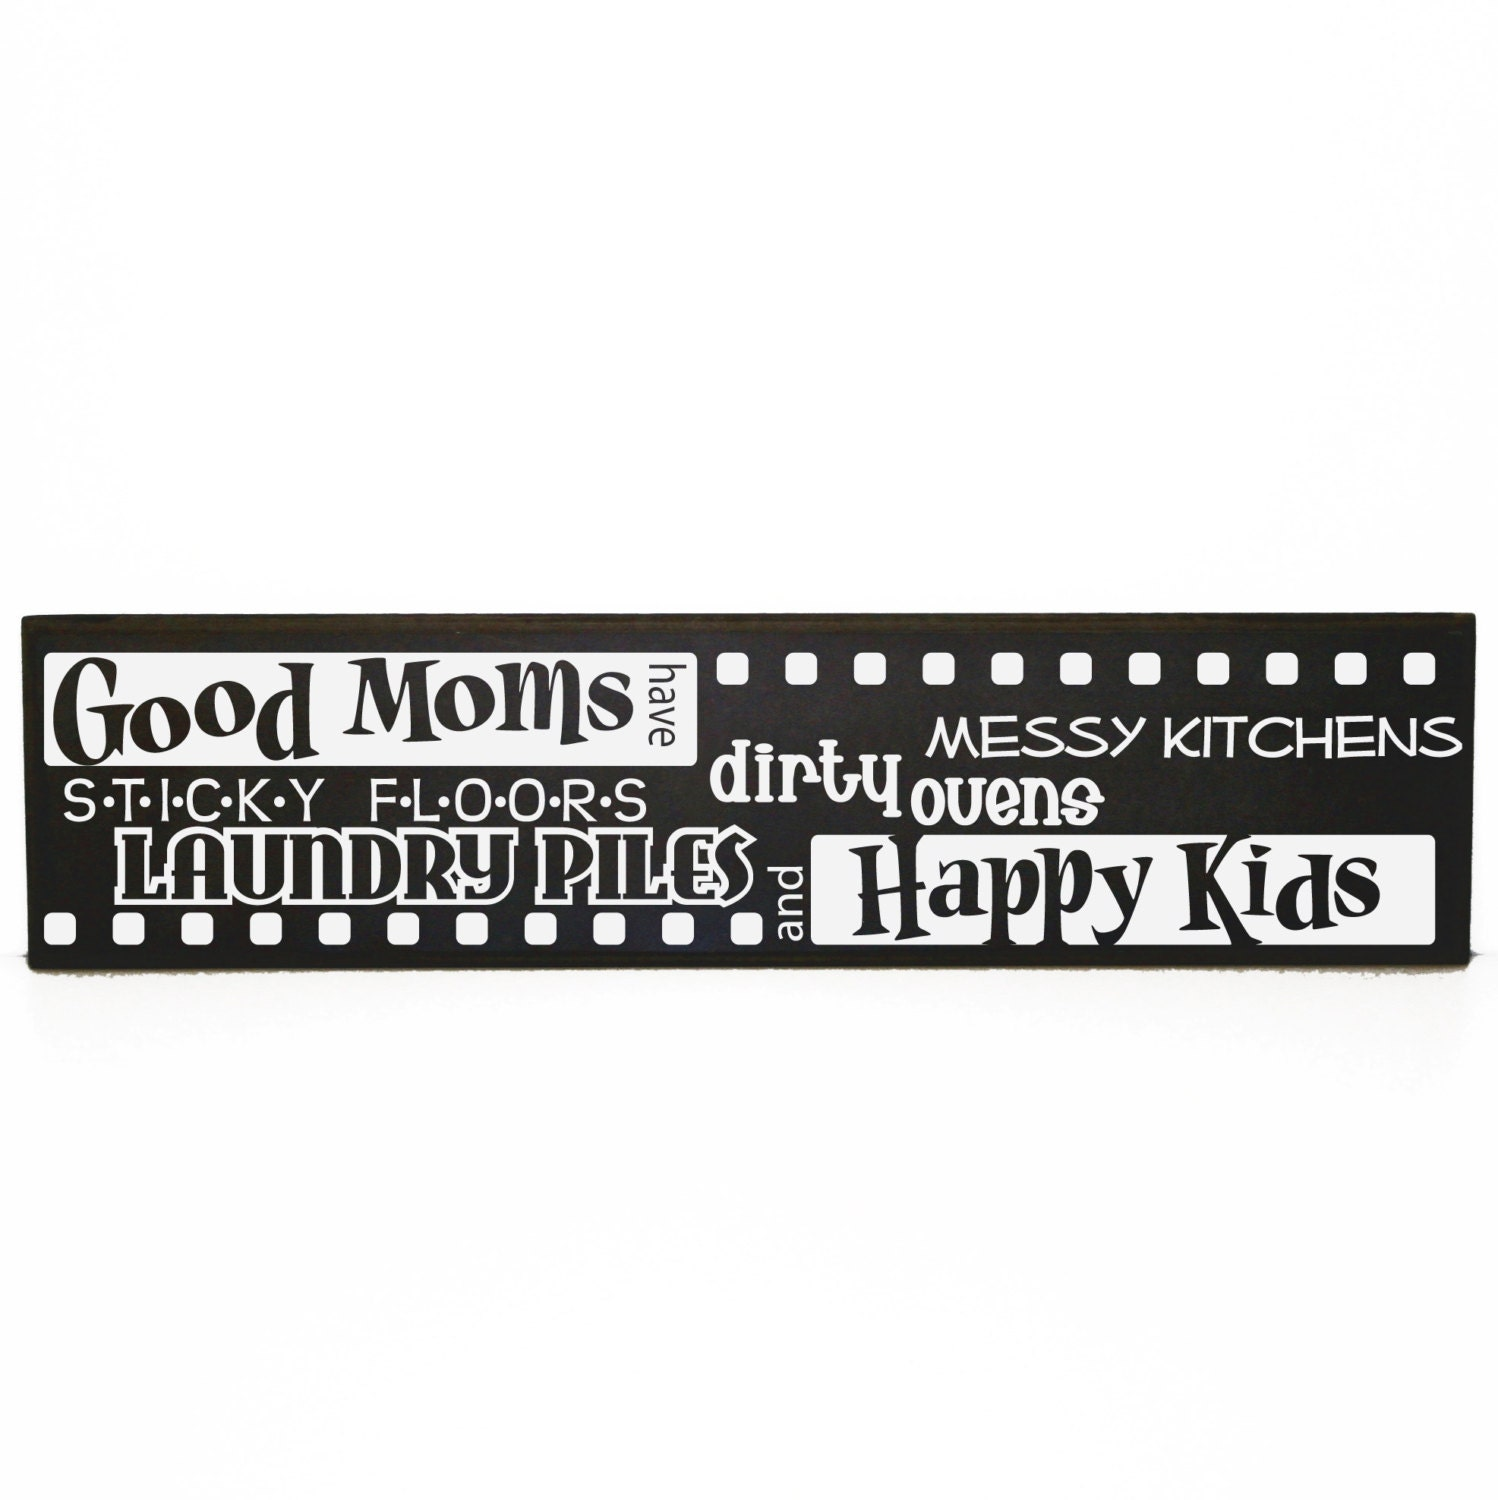 Good Moms Have Sticky Floors Quote: Good Moms Have Sticky Floors... Happy Kids Sign Mother's